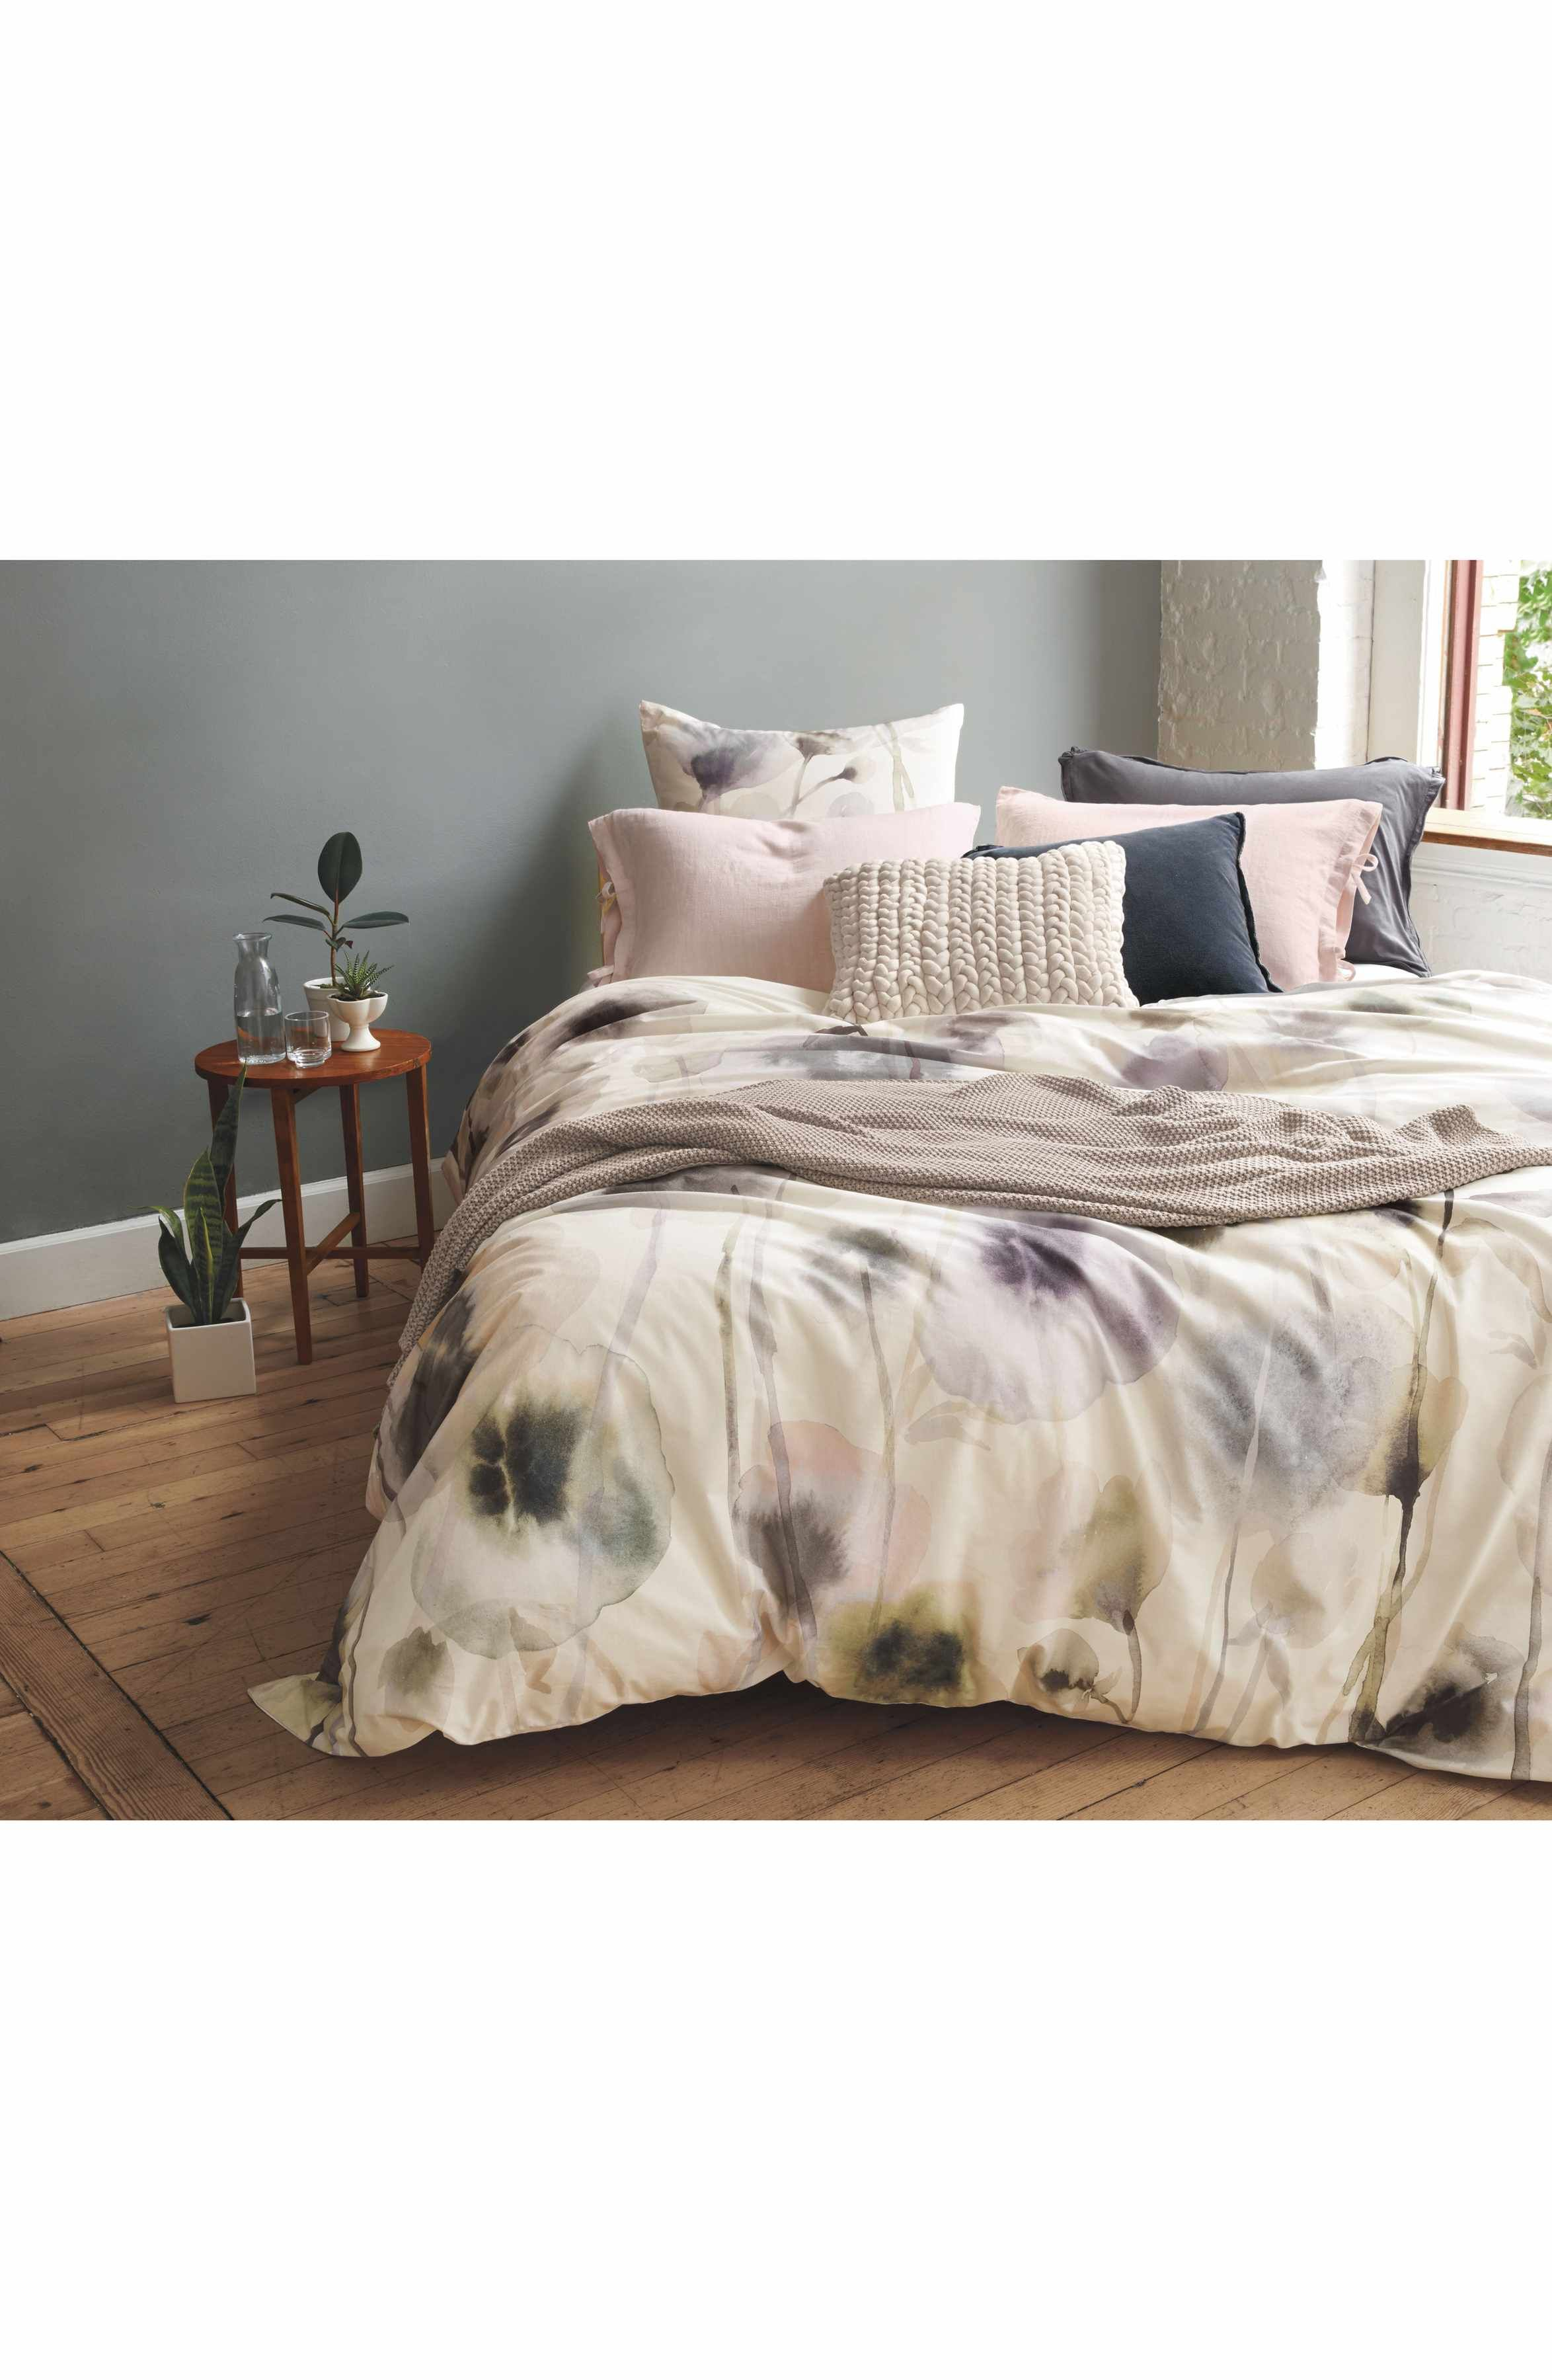 bedding rags and products screenshot watercolor tree ink frog duvet sets